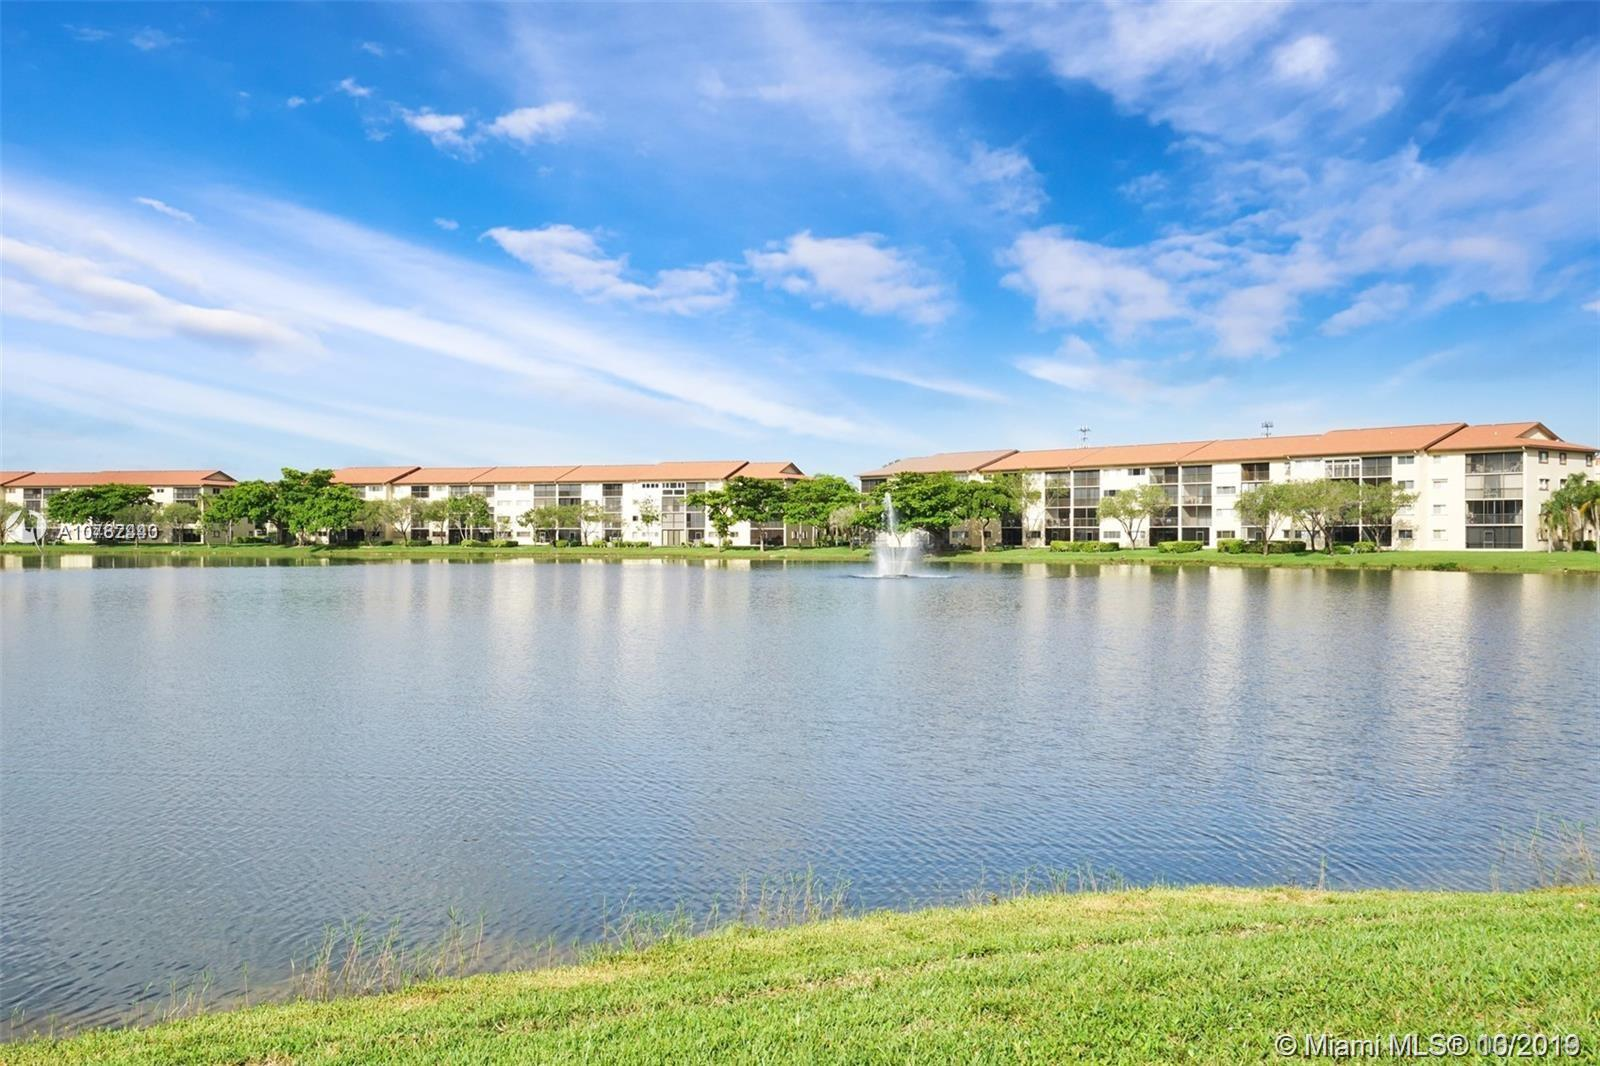 Resort style living with lake views from this sought after spacious corner unit.  2 bedrooms, 2 bathrooms, walk-in closets, ceramic tiled floors, washer & dryer, pantry, screened balcony, lots of amenities that include movie theater, tennis, indoor & outdoor swimming pools, 2 health clubs, sauna, spa, card tables, shuffleboard, library, restaurant, golf club, houses of worship, 55+, okay to rent, free transportation to Pembroke Lakes Mall, and shopping area.